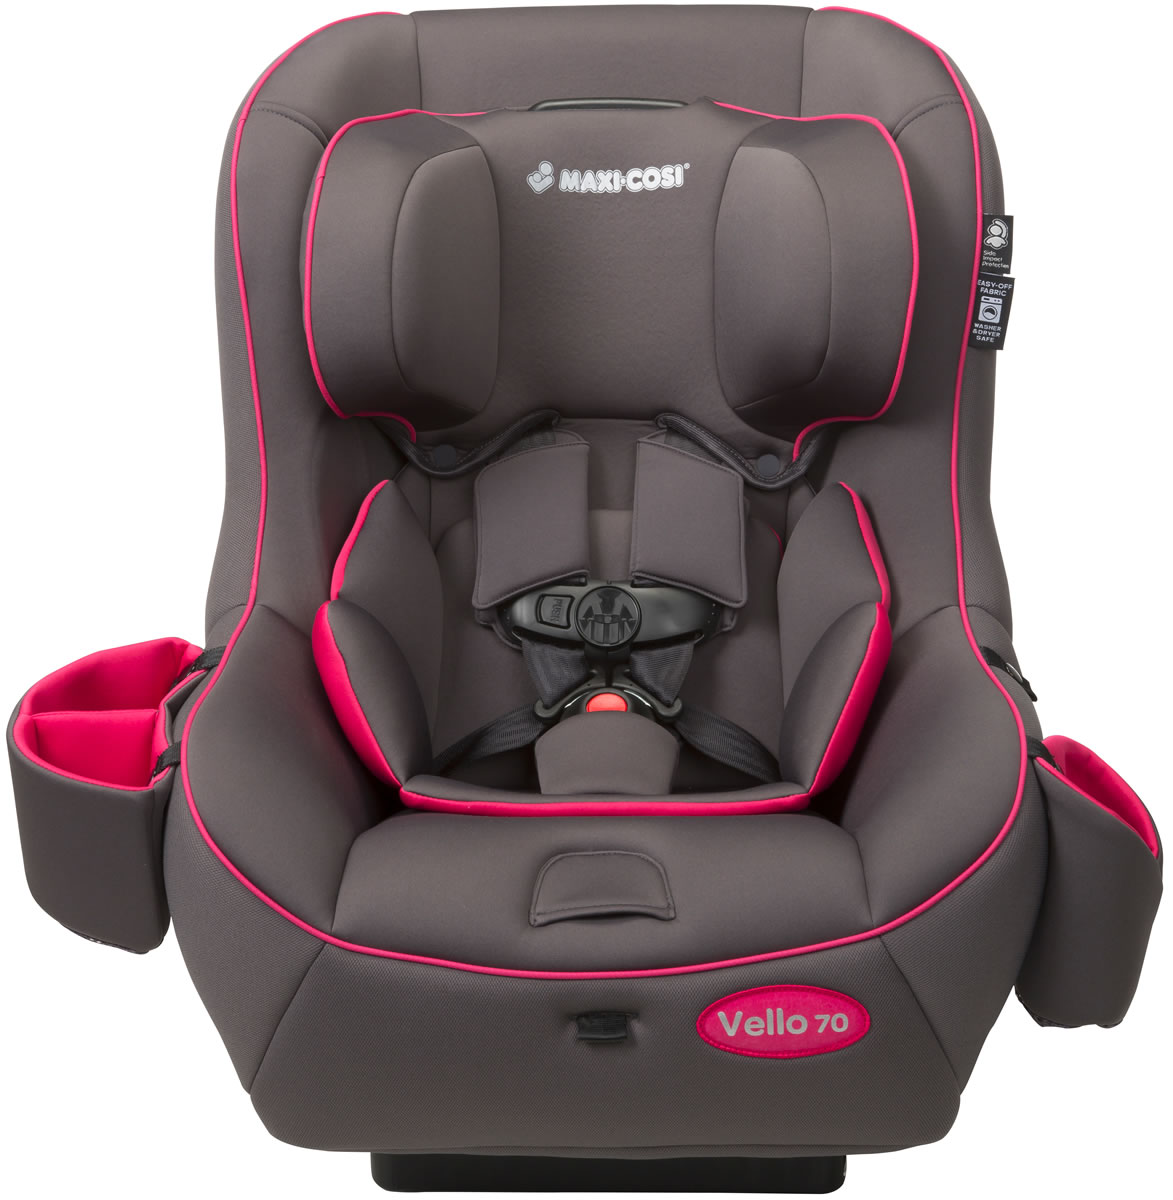 MAXI-COSI Vello 70 Convertible Car Seat - Grey/Pink